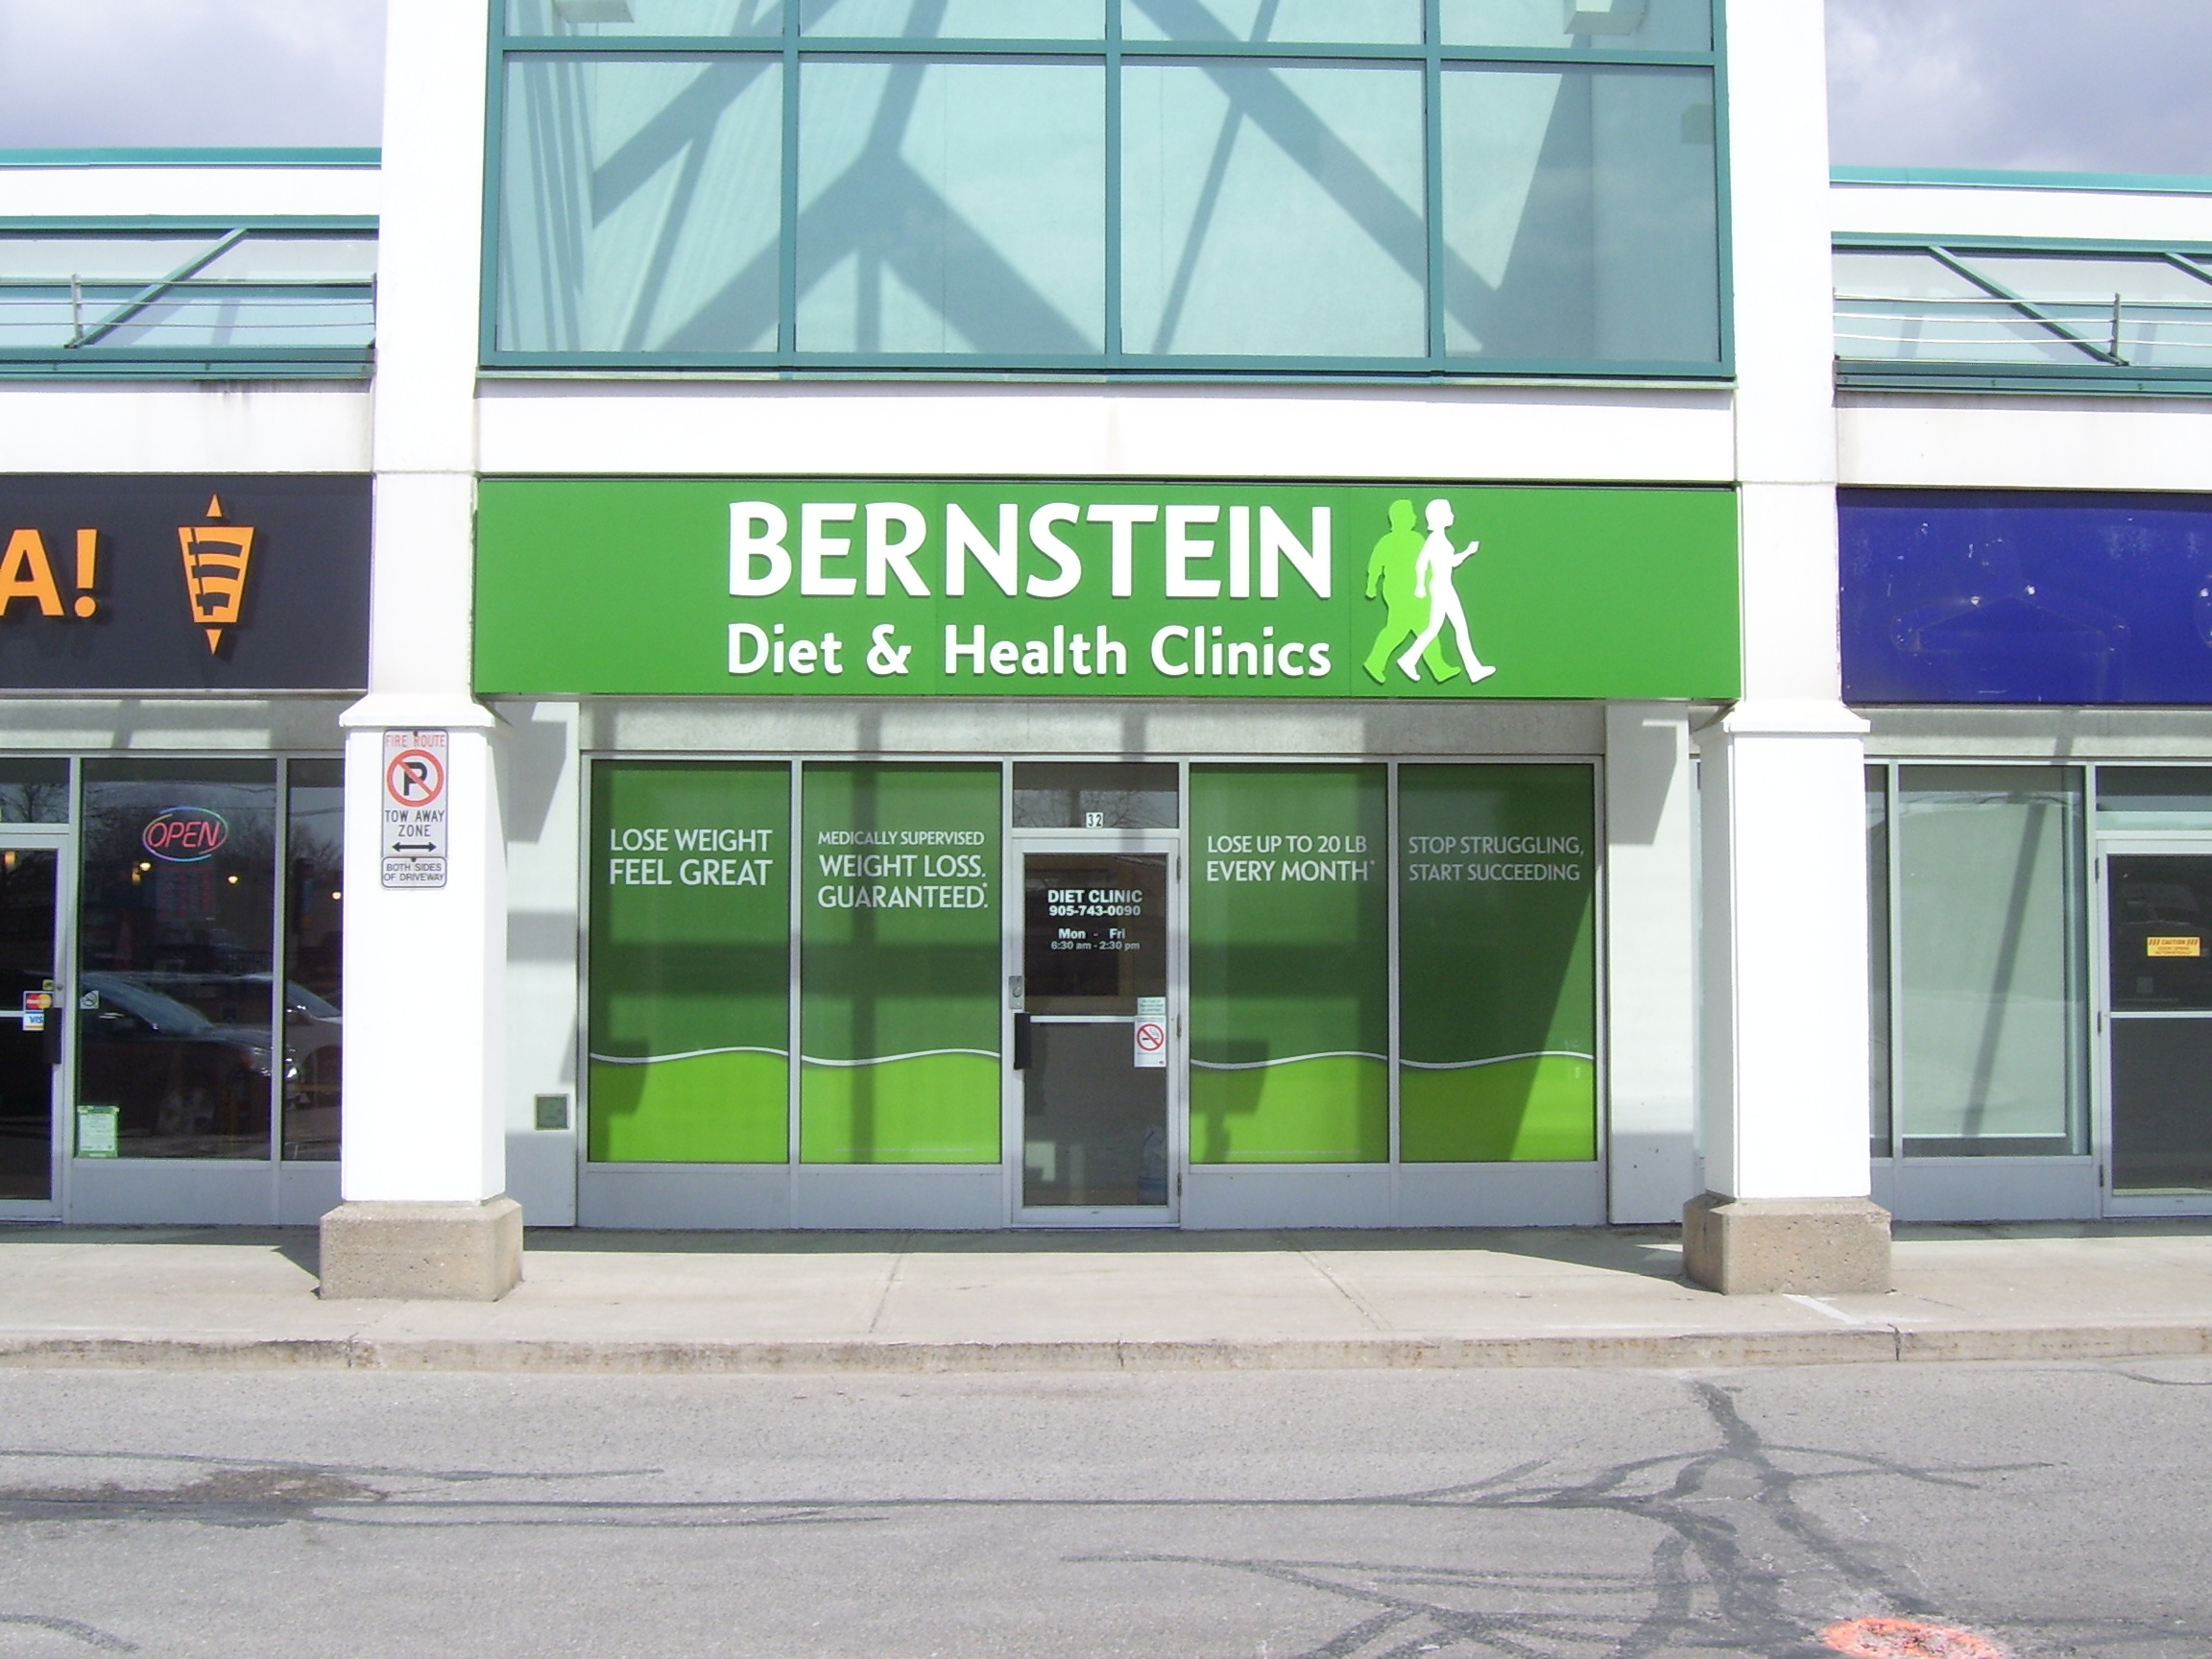 Dr. Bernstein Weight Loss & Diet Clinic, Oshawa - Courtice, Ontario